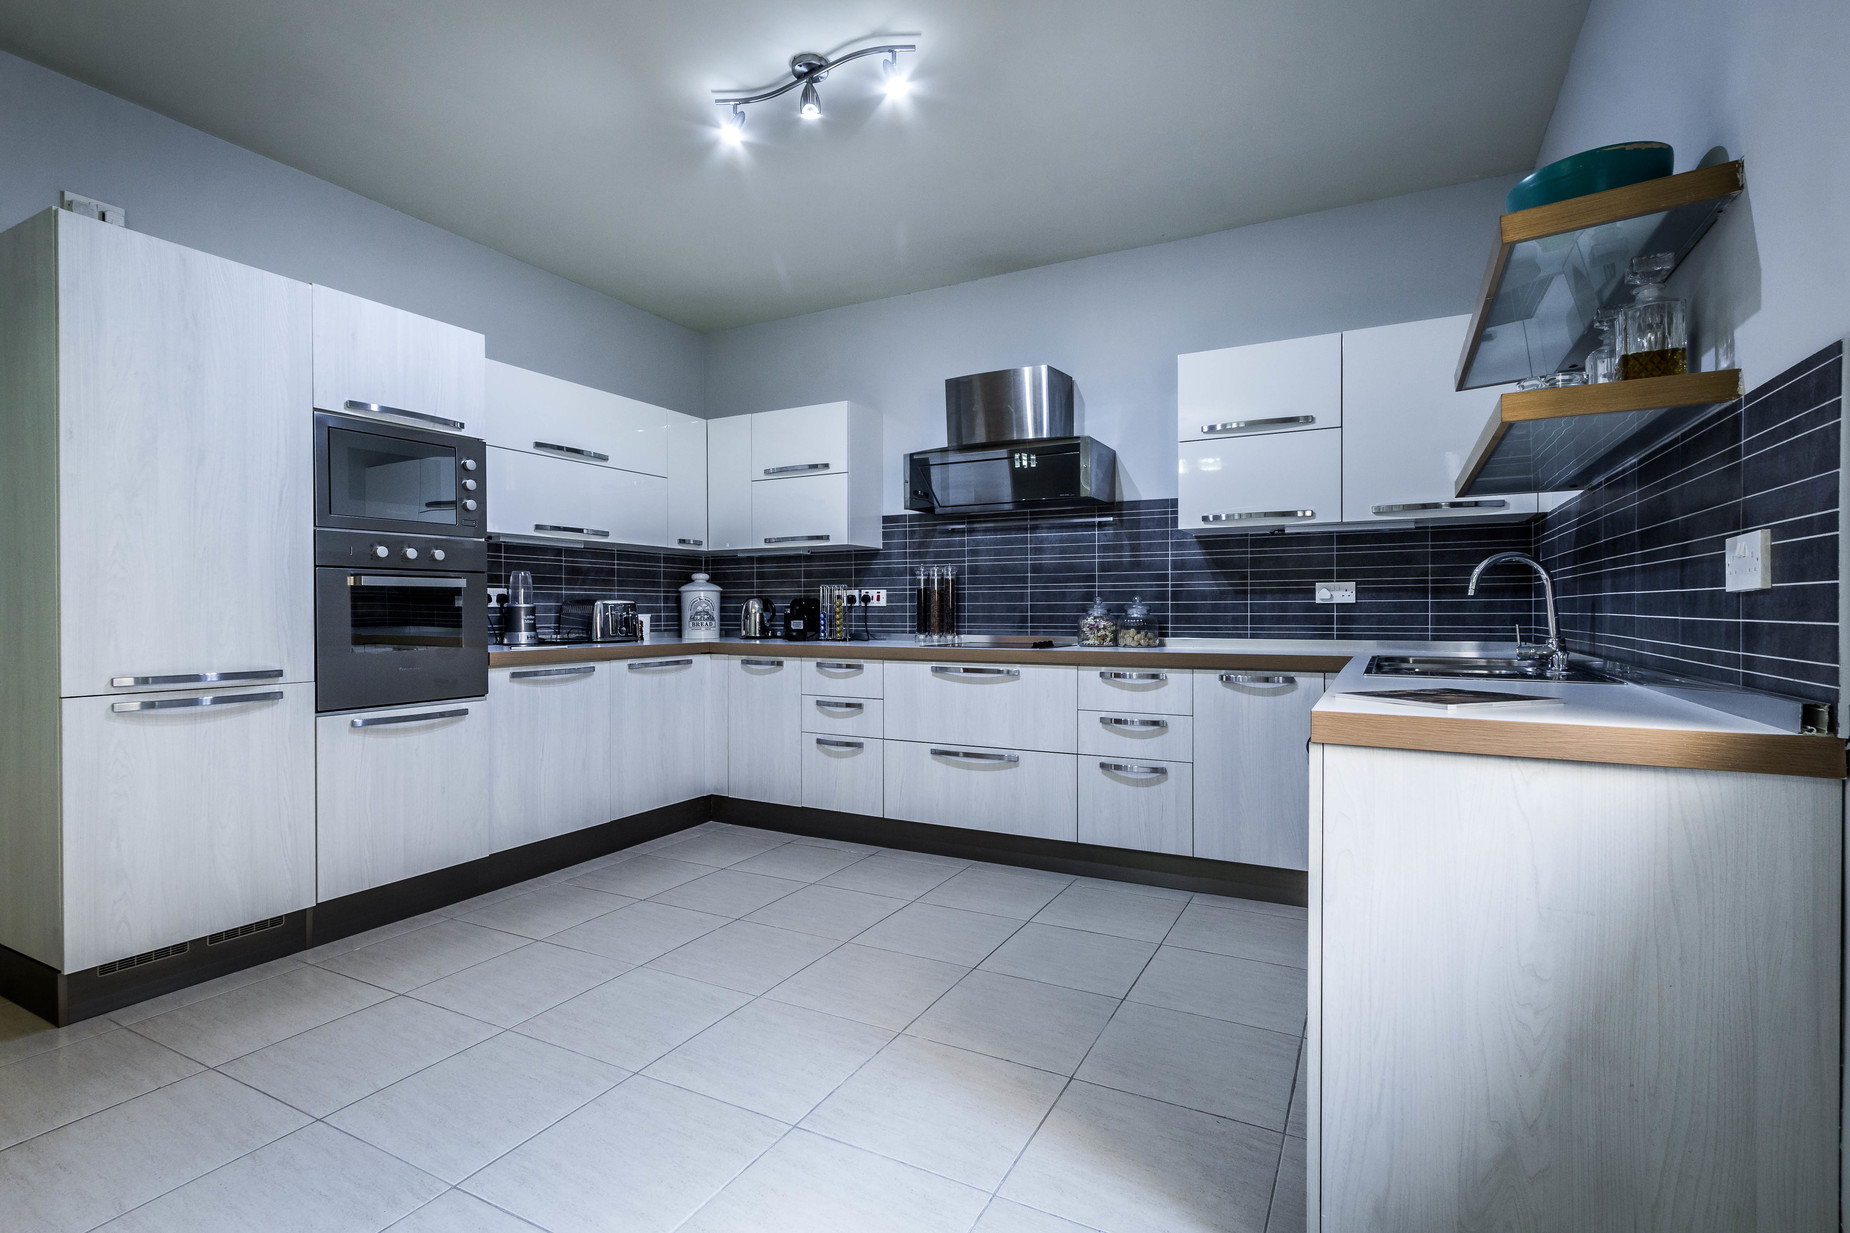 4 bed Apartment For Sale in Mellieha, Mellieha - thumb 10